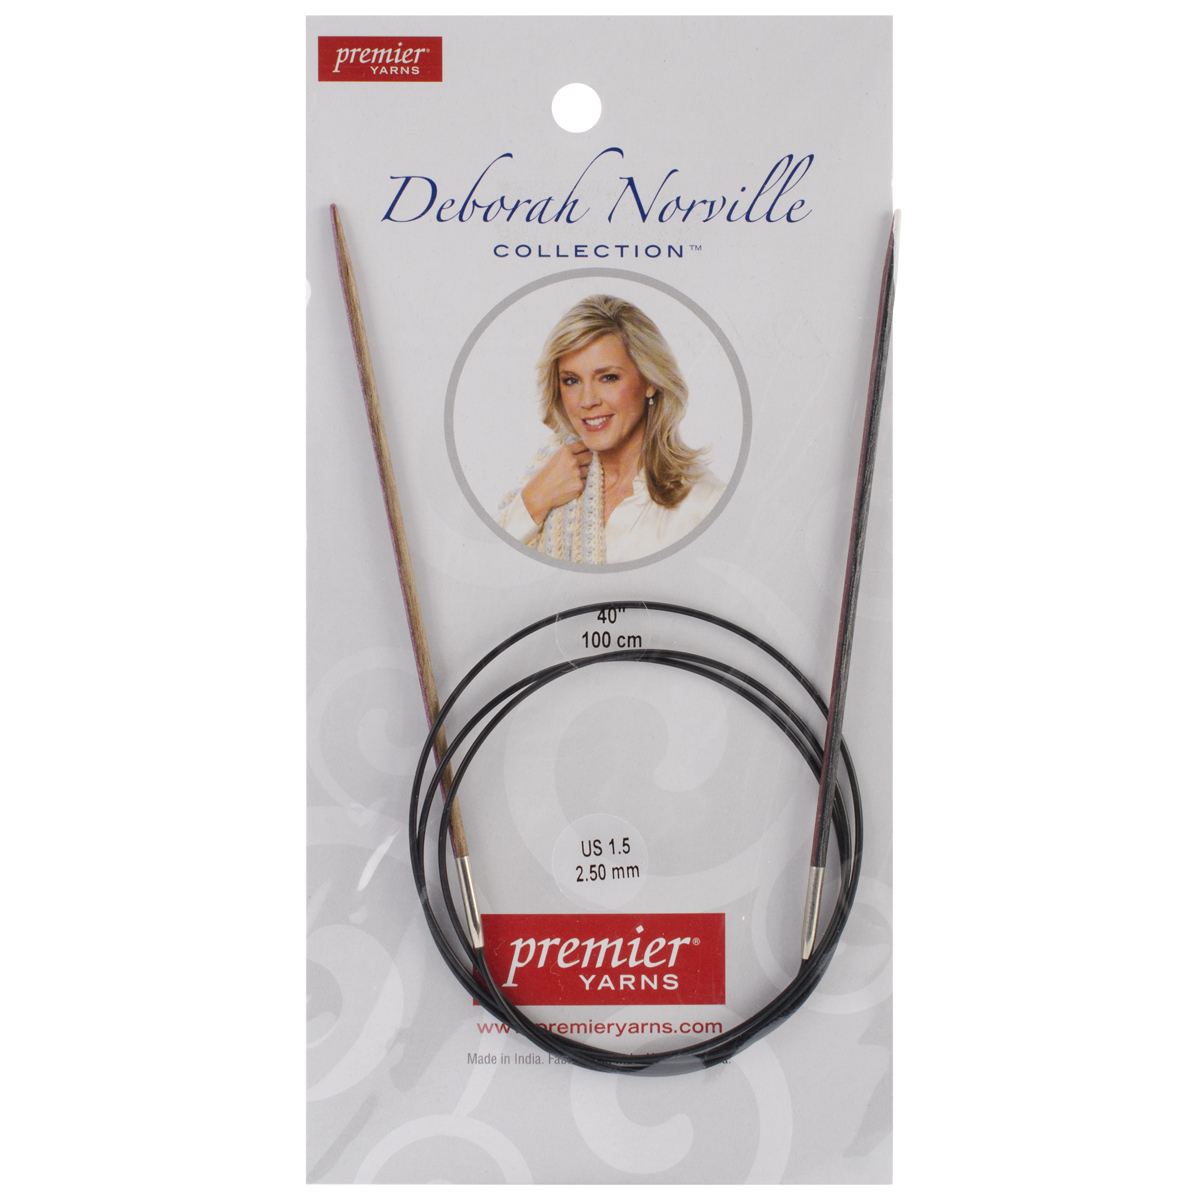 Premier Yarns Fixed Circular Needles 40\u0022 Size 1.5/2.5mm